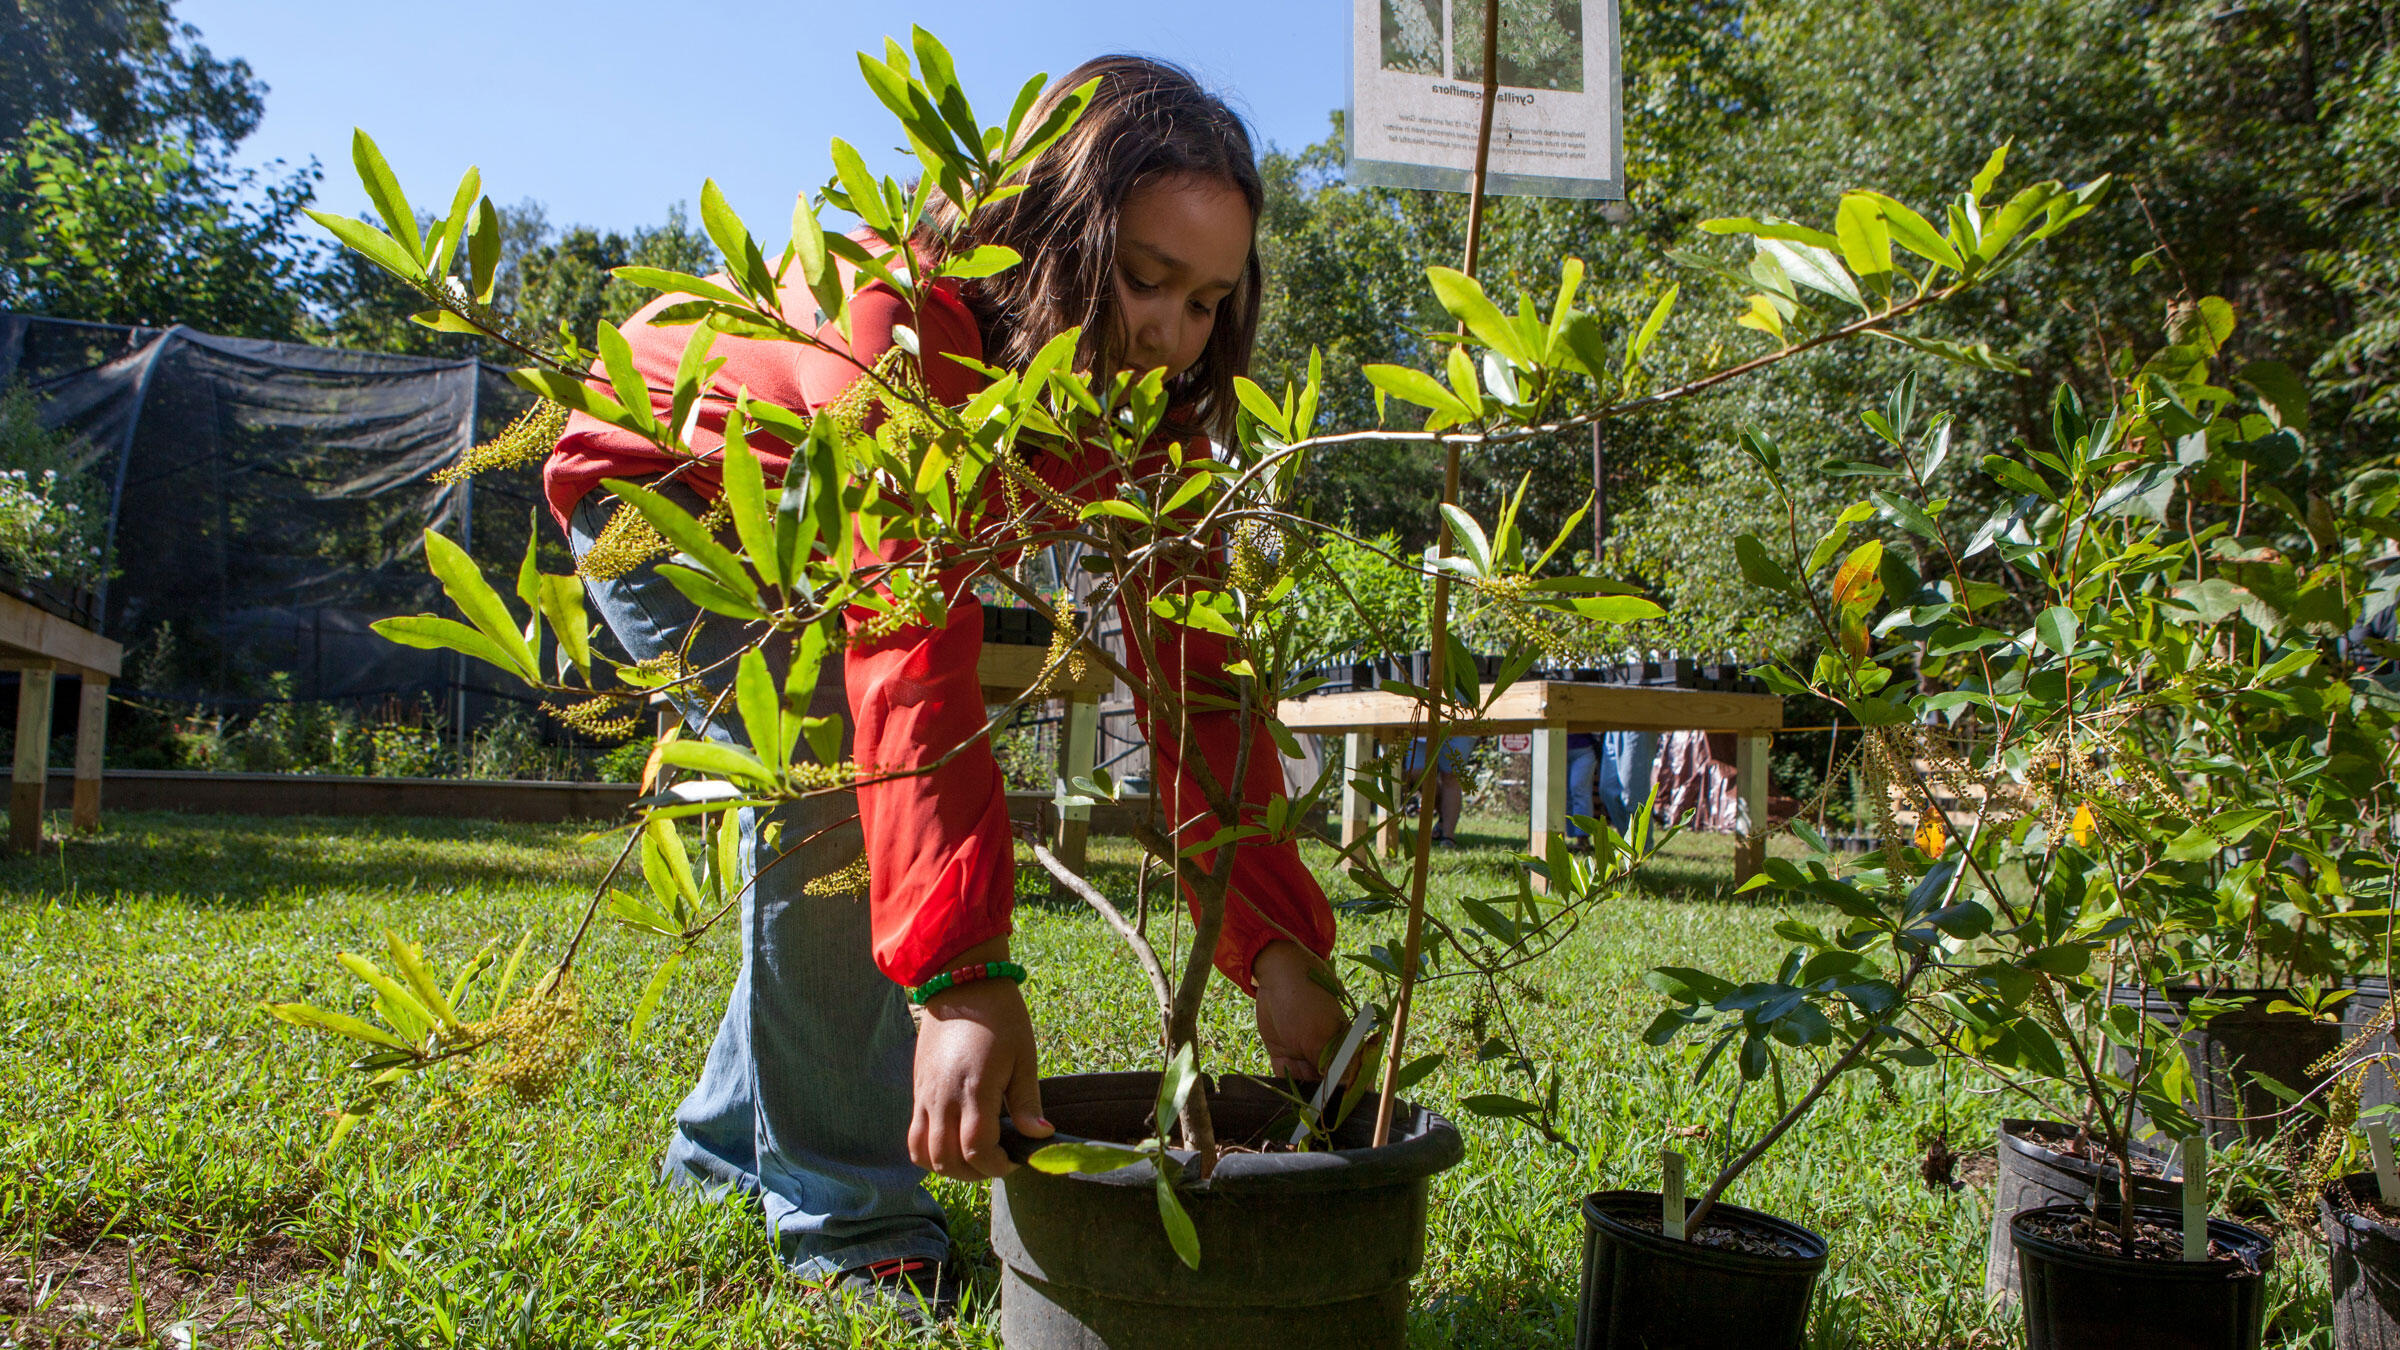 A visitor at the 2015 Strawberry Plains Audubon Center Native Plant Sale in Holly Springs, Mississippi. Camilla Cerea/Audubon